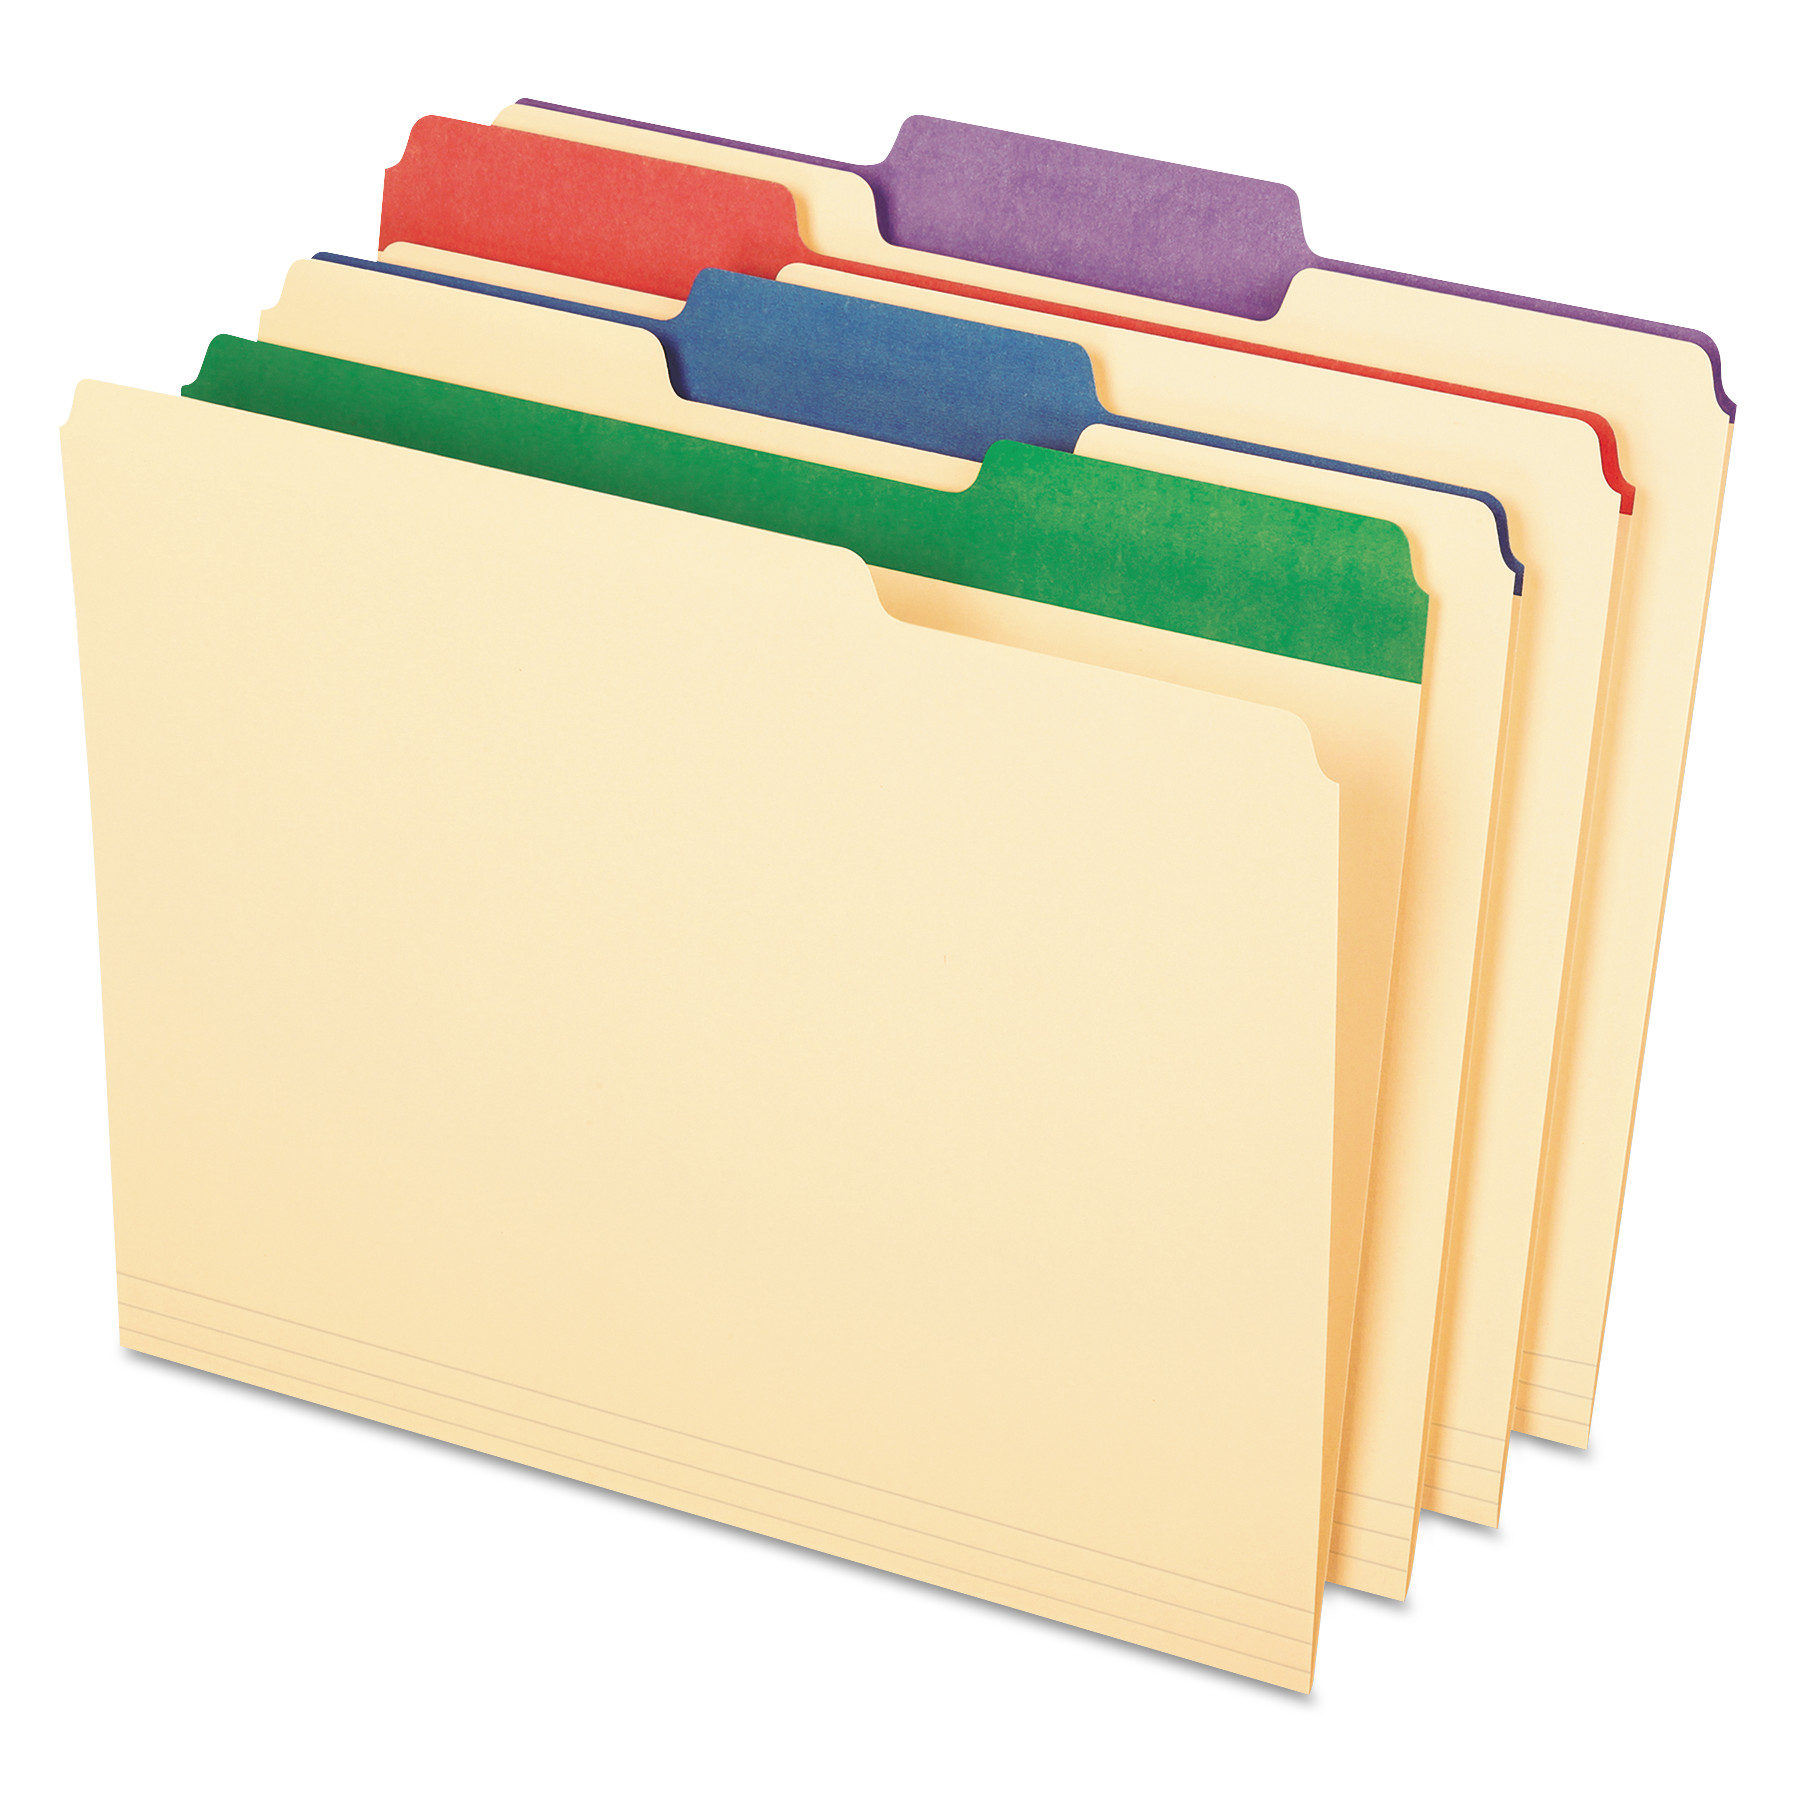 "Pendaflex Color Tab File Folders, 1/3 Cut, 3/4"" Exp., Letter, 50/BX -PFX84101"